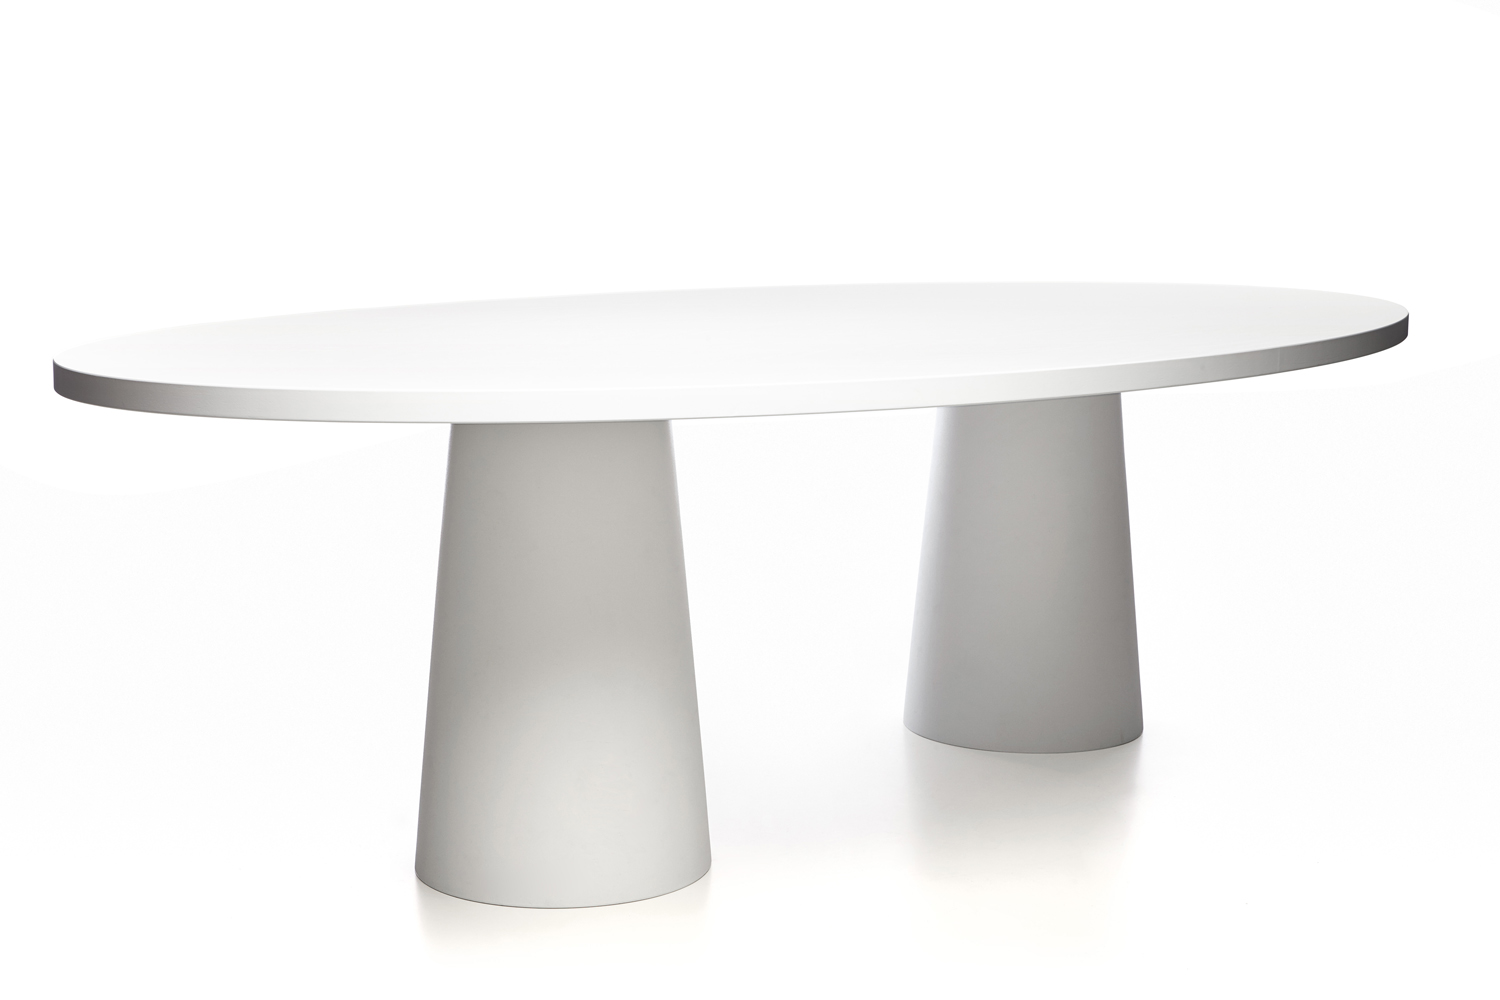 container-oval-260-300dpi-moooi